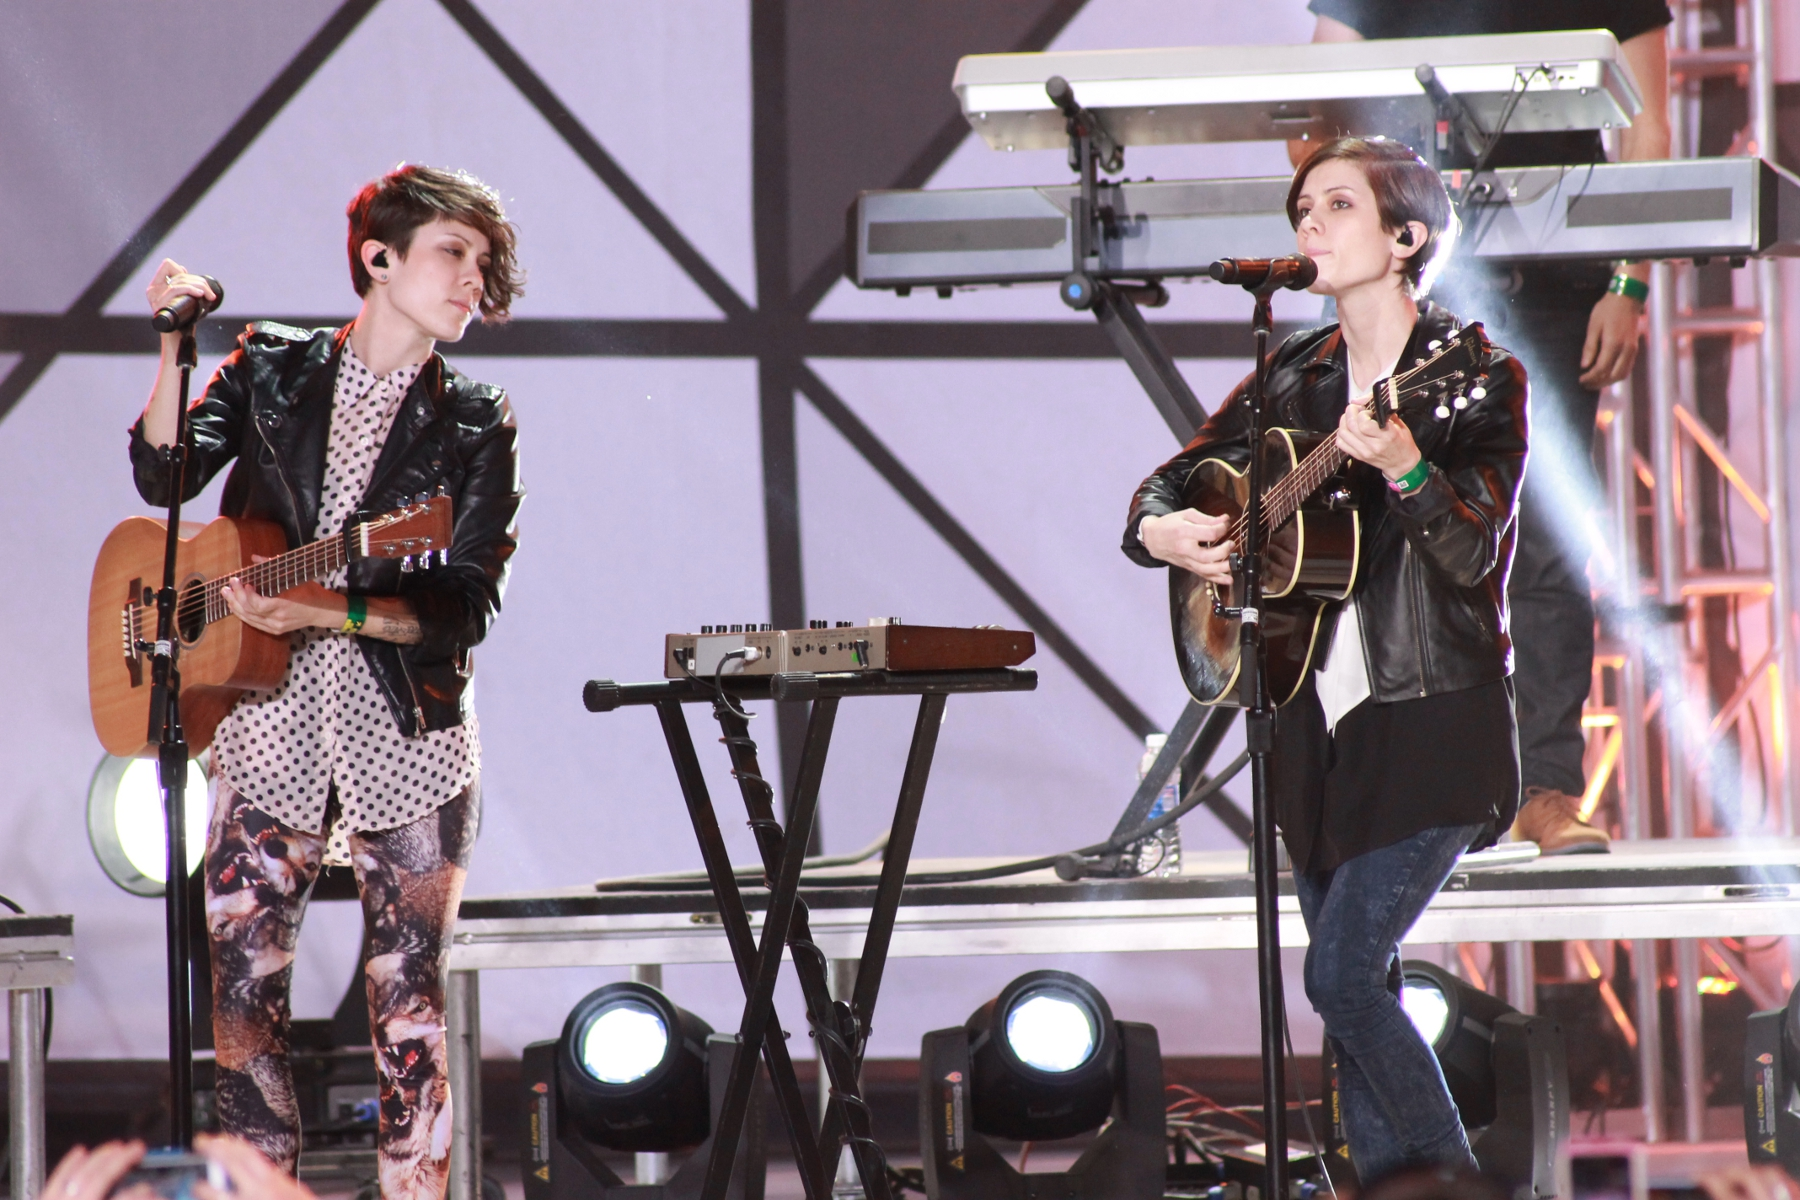 Tegan And Sara Reinvent Recently-Discovered High School Era Songs on New Album Hey I'm Just Like You